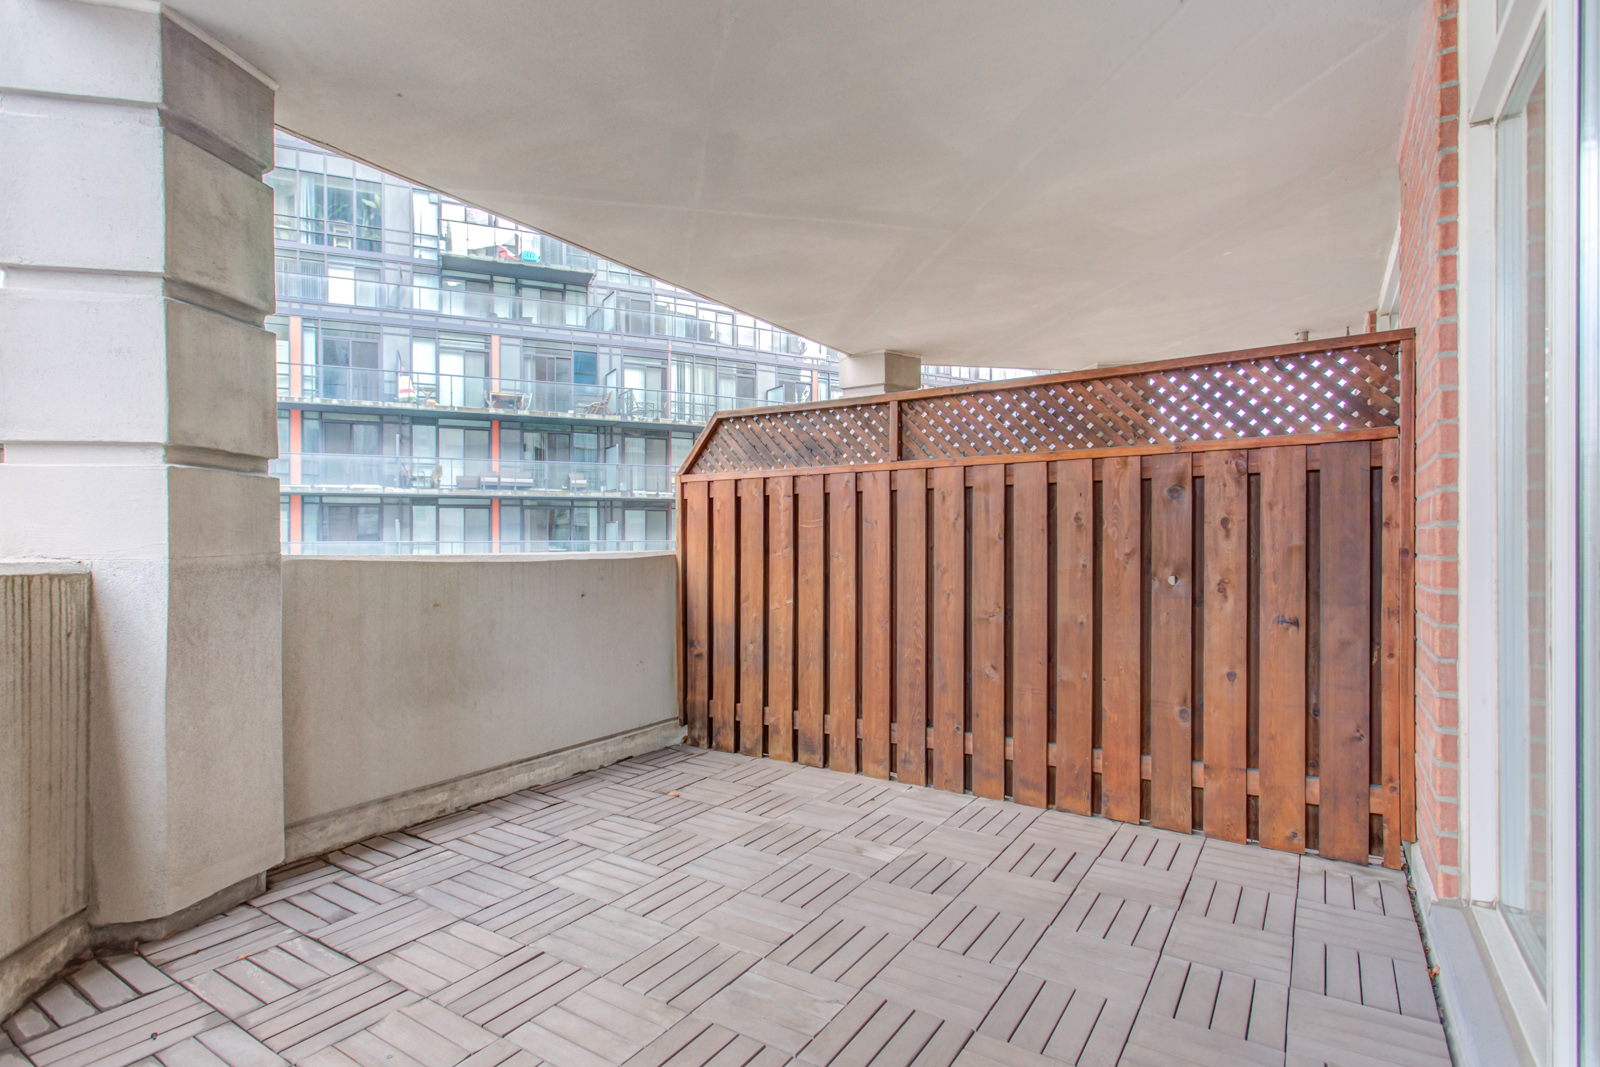 Balcony and deck of 20 Collier St Unit 408 with tiled floors and red wood fence.